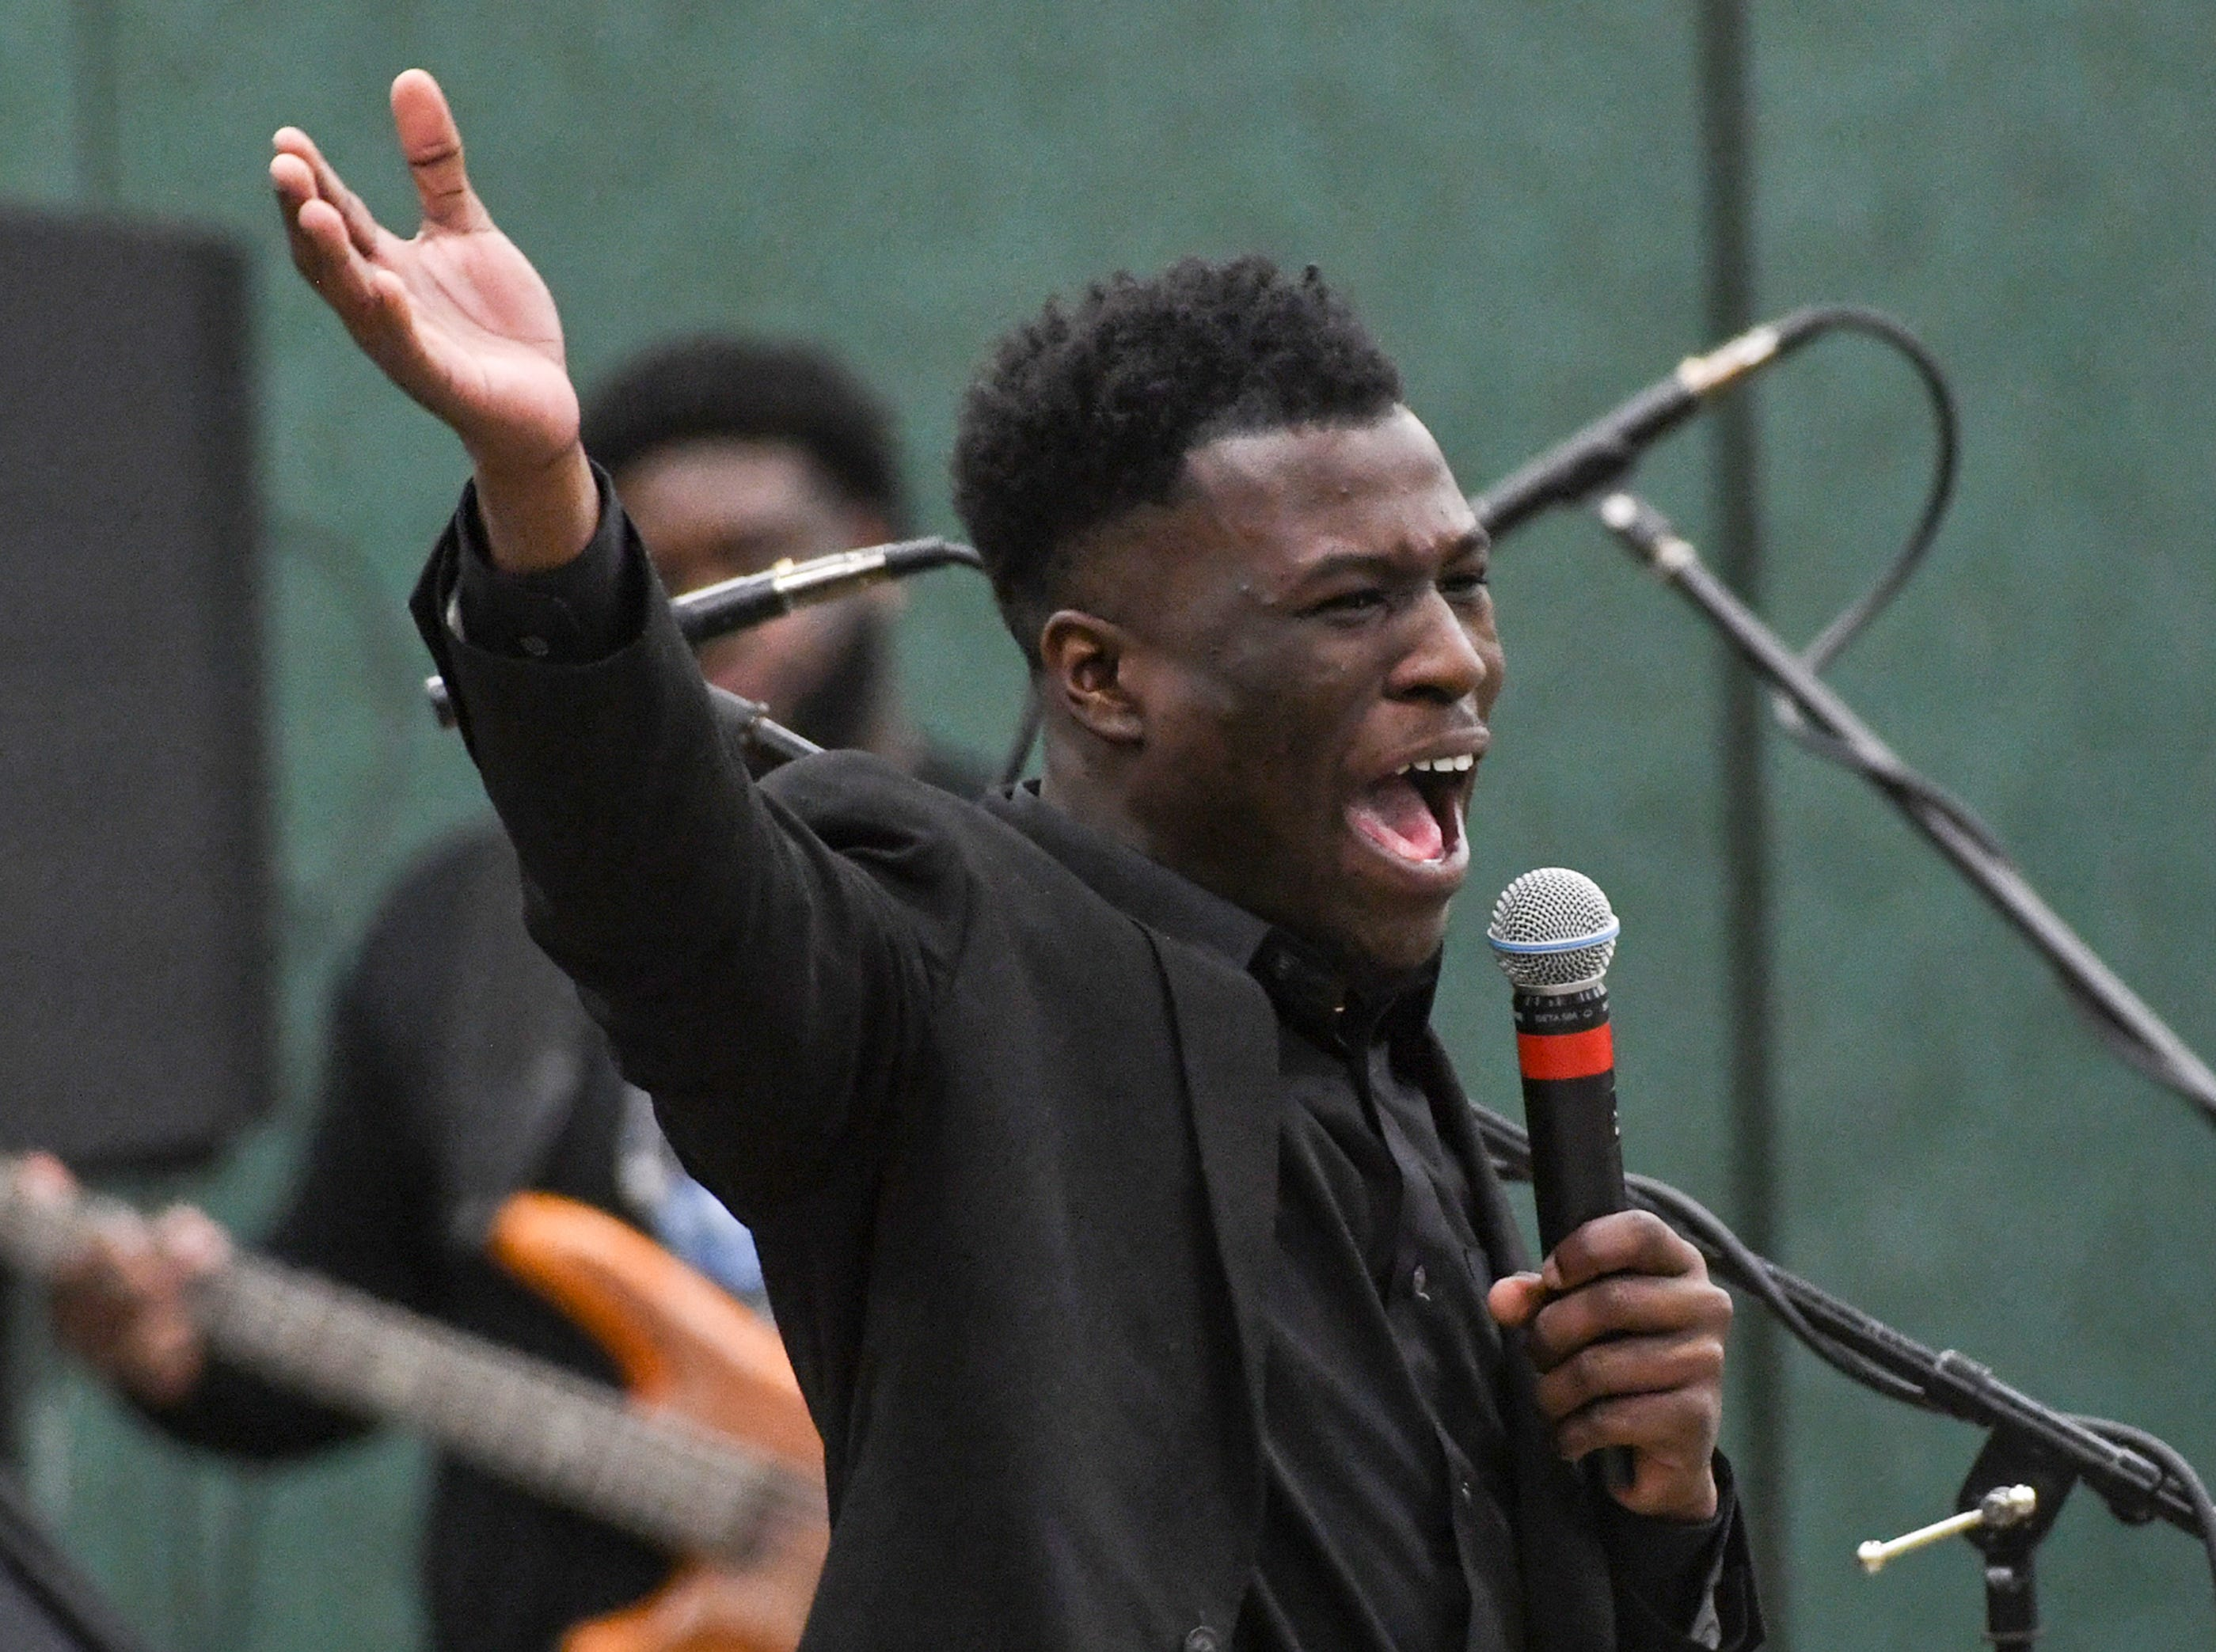 """Malek McDuffie leads """"Lift Every Voice and Sing"""" during the Anderson County Martin Luther King, Jr. Celebration in Anderson January 21, 2019. This yearÕs keynote speaker is Cyrus Birch, Charleston native and community activist, who works as a model and stunt performer, seen as a Jabari warrior in the megahit ÒBlack Panther.Ó"""